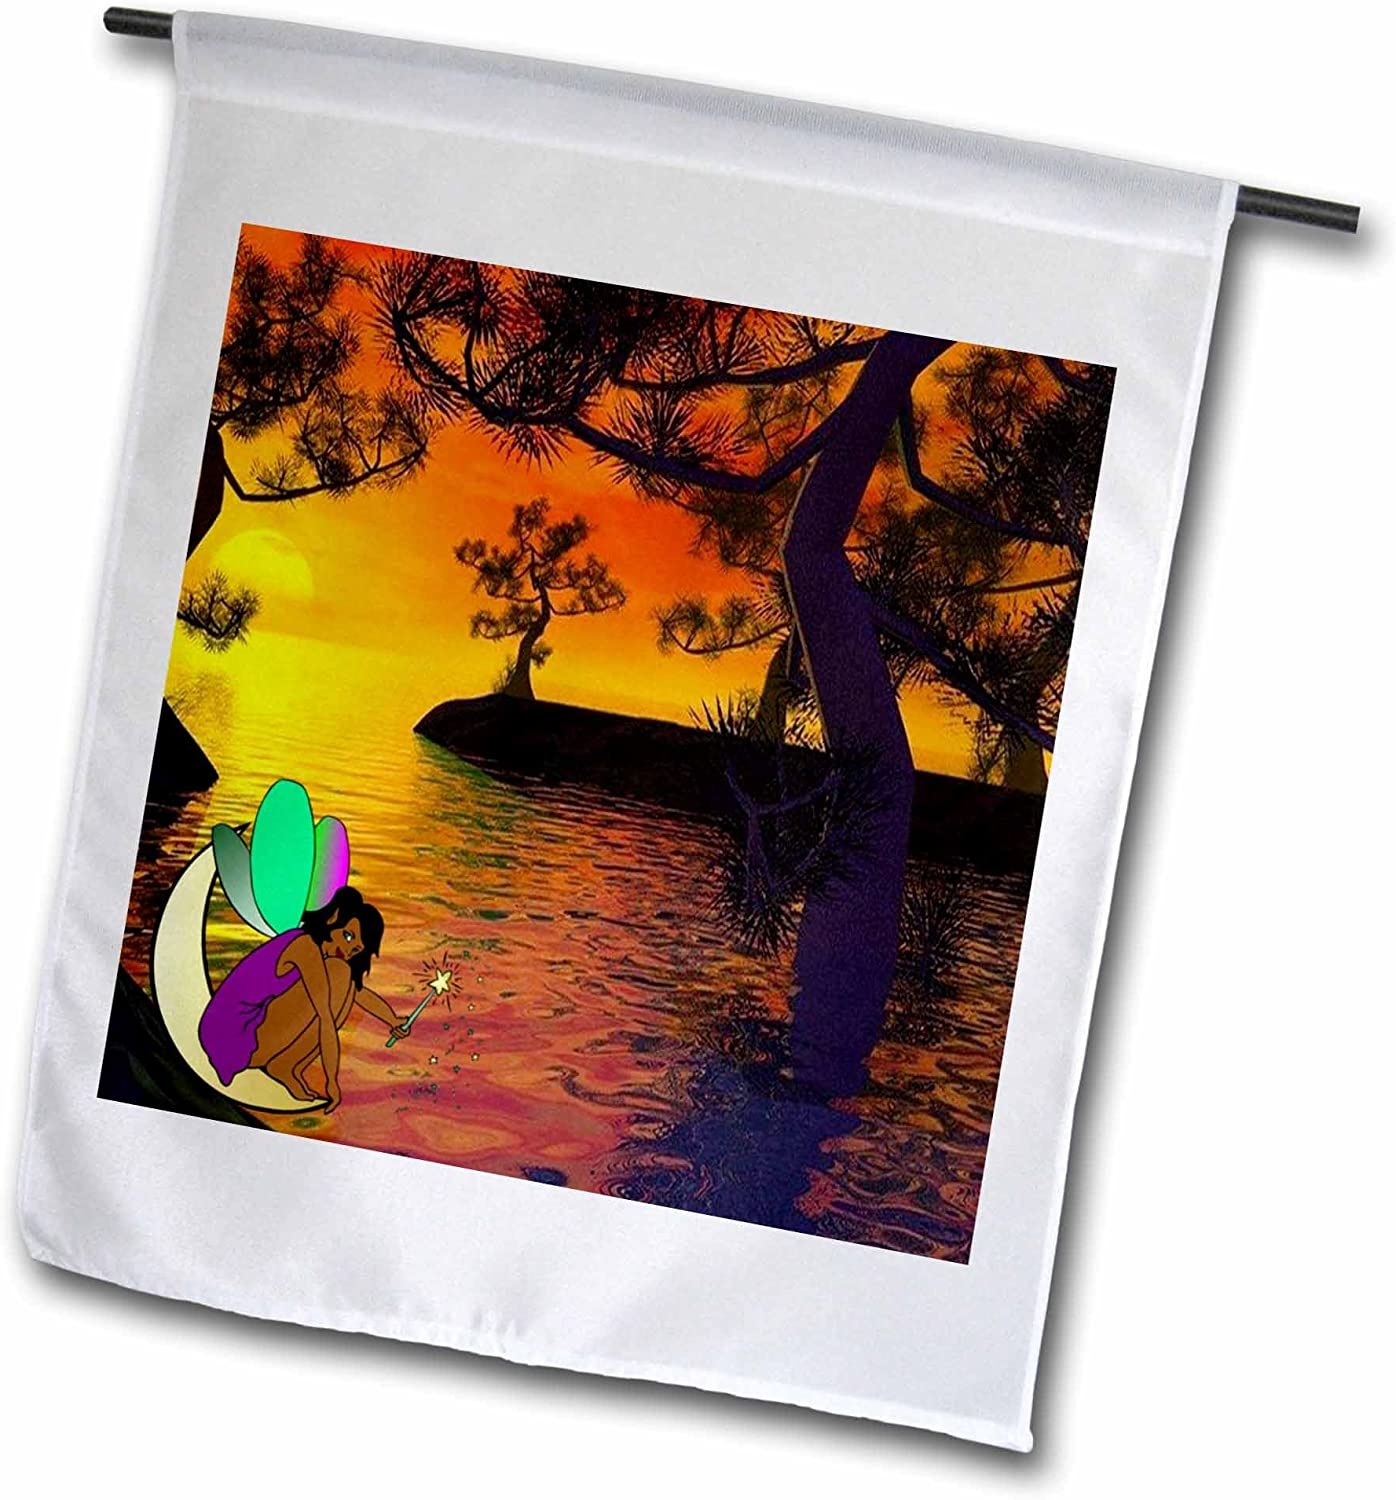 3dRose Florene Fairies and Fantasy - Image of African American Fairy in Treed Sunset Over Water - 12 x 18 inch Garden Flag (fl_240723_1)